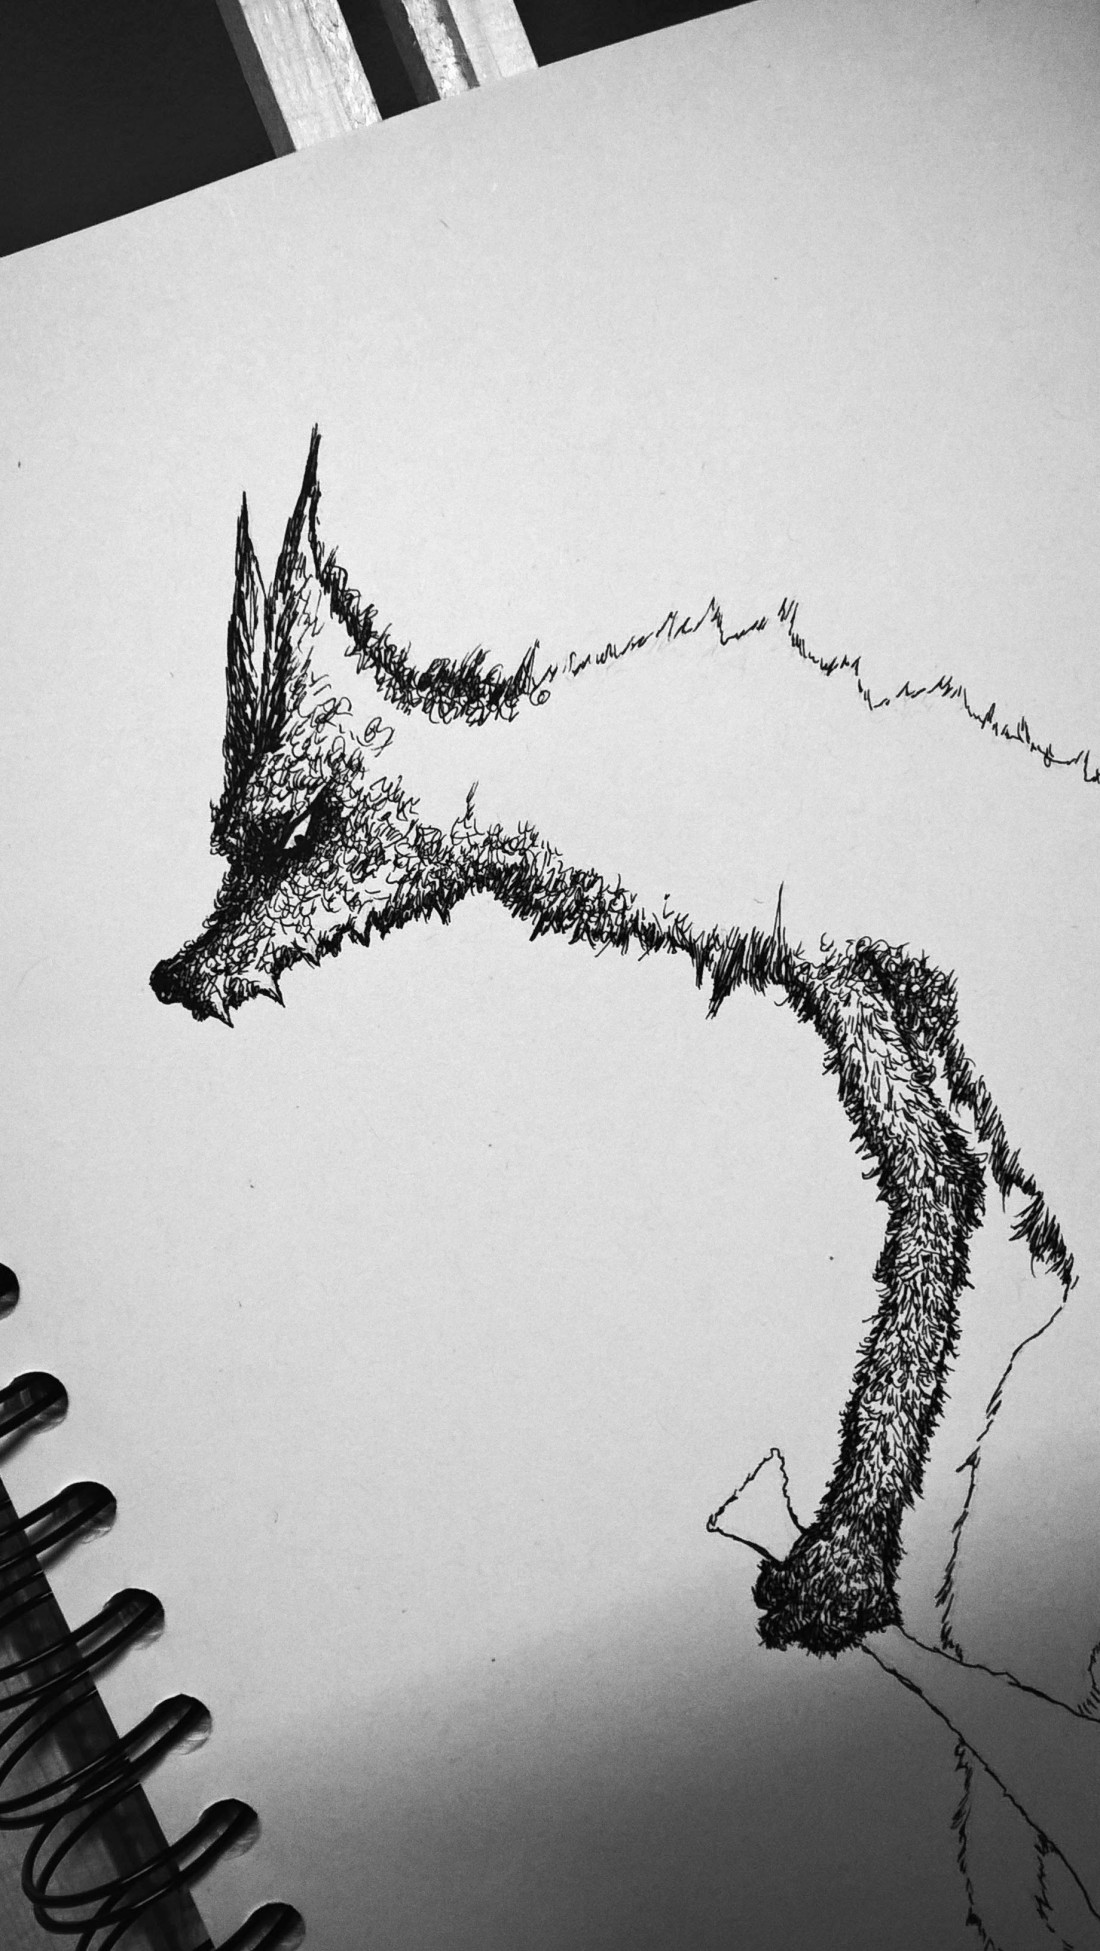 Big Bad Wolf illustration ink on A4 paper